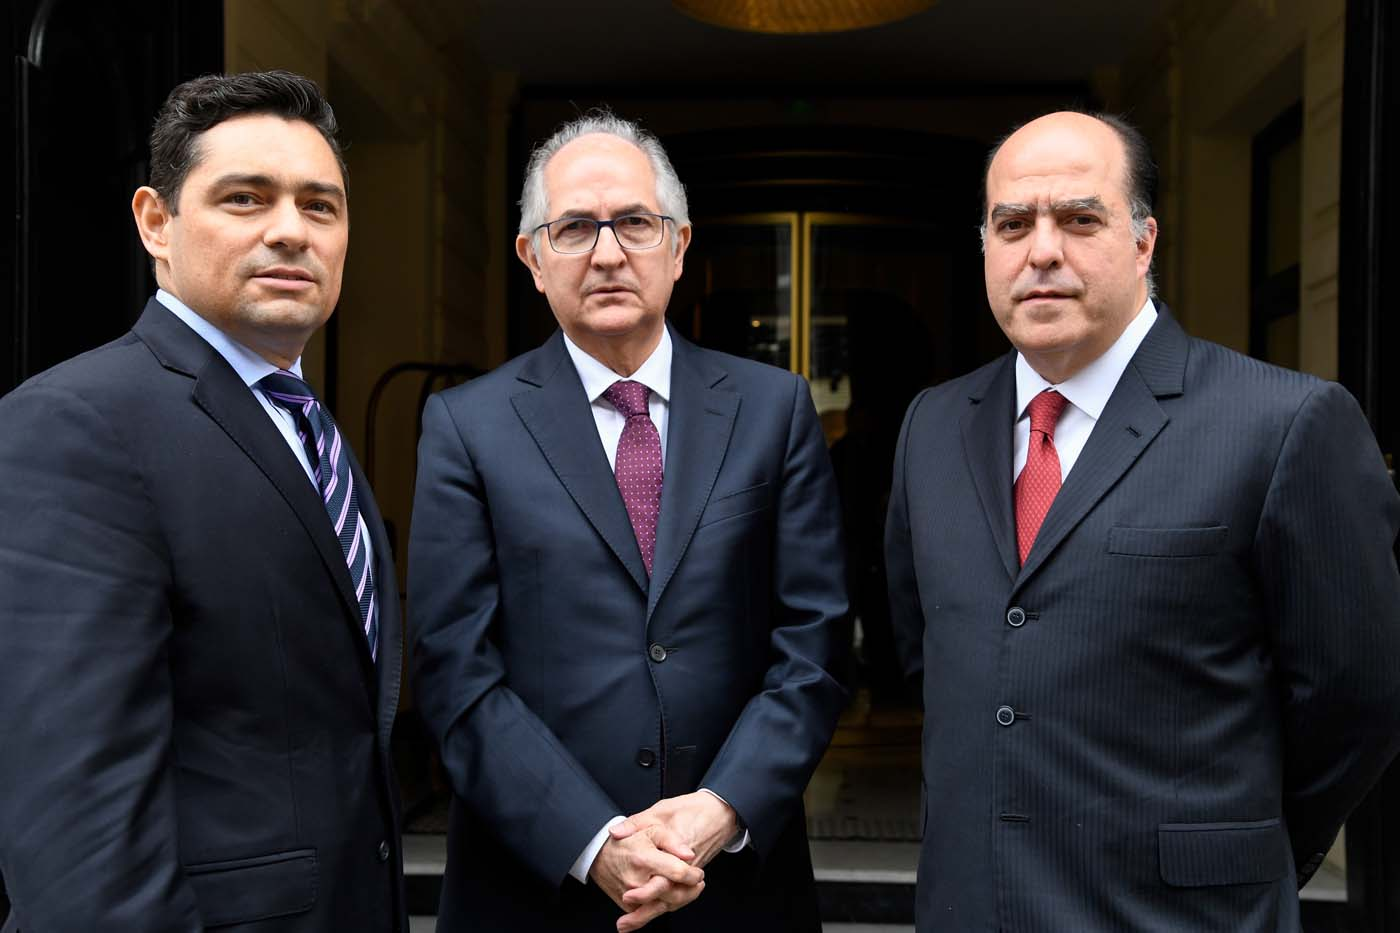 Members of Venezuela's opposition, (L-R) representative to leader Leopoldo Lopez, Carlos Vecchio, Caracas mayor Antonio Ledezma, and former president of the National Assembly Julio Borges pose after a press conference on April 3, 2018 in Paris. / AFP PHOTO / BERTRAND GUAY